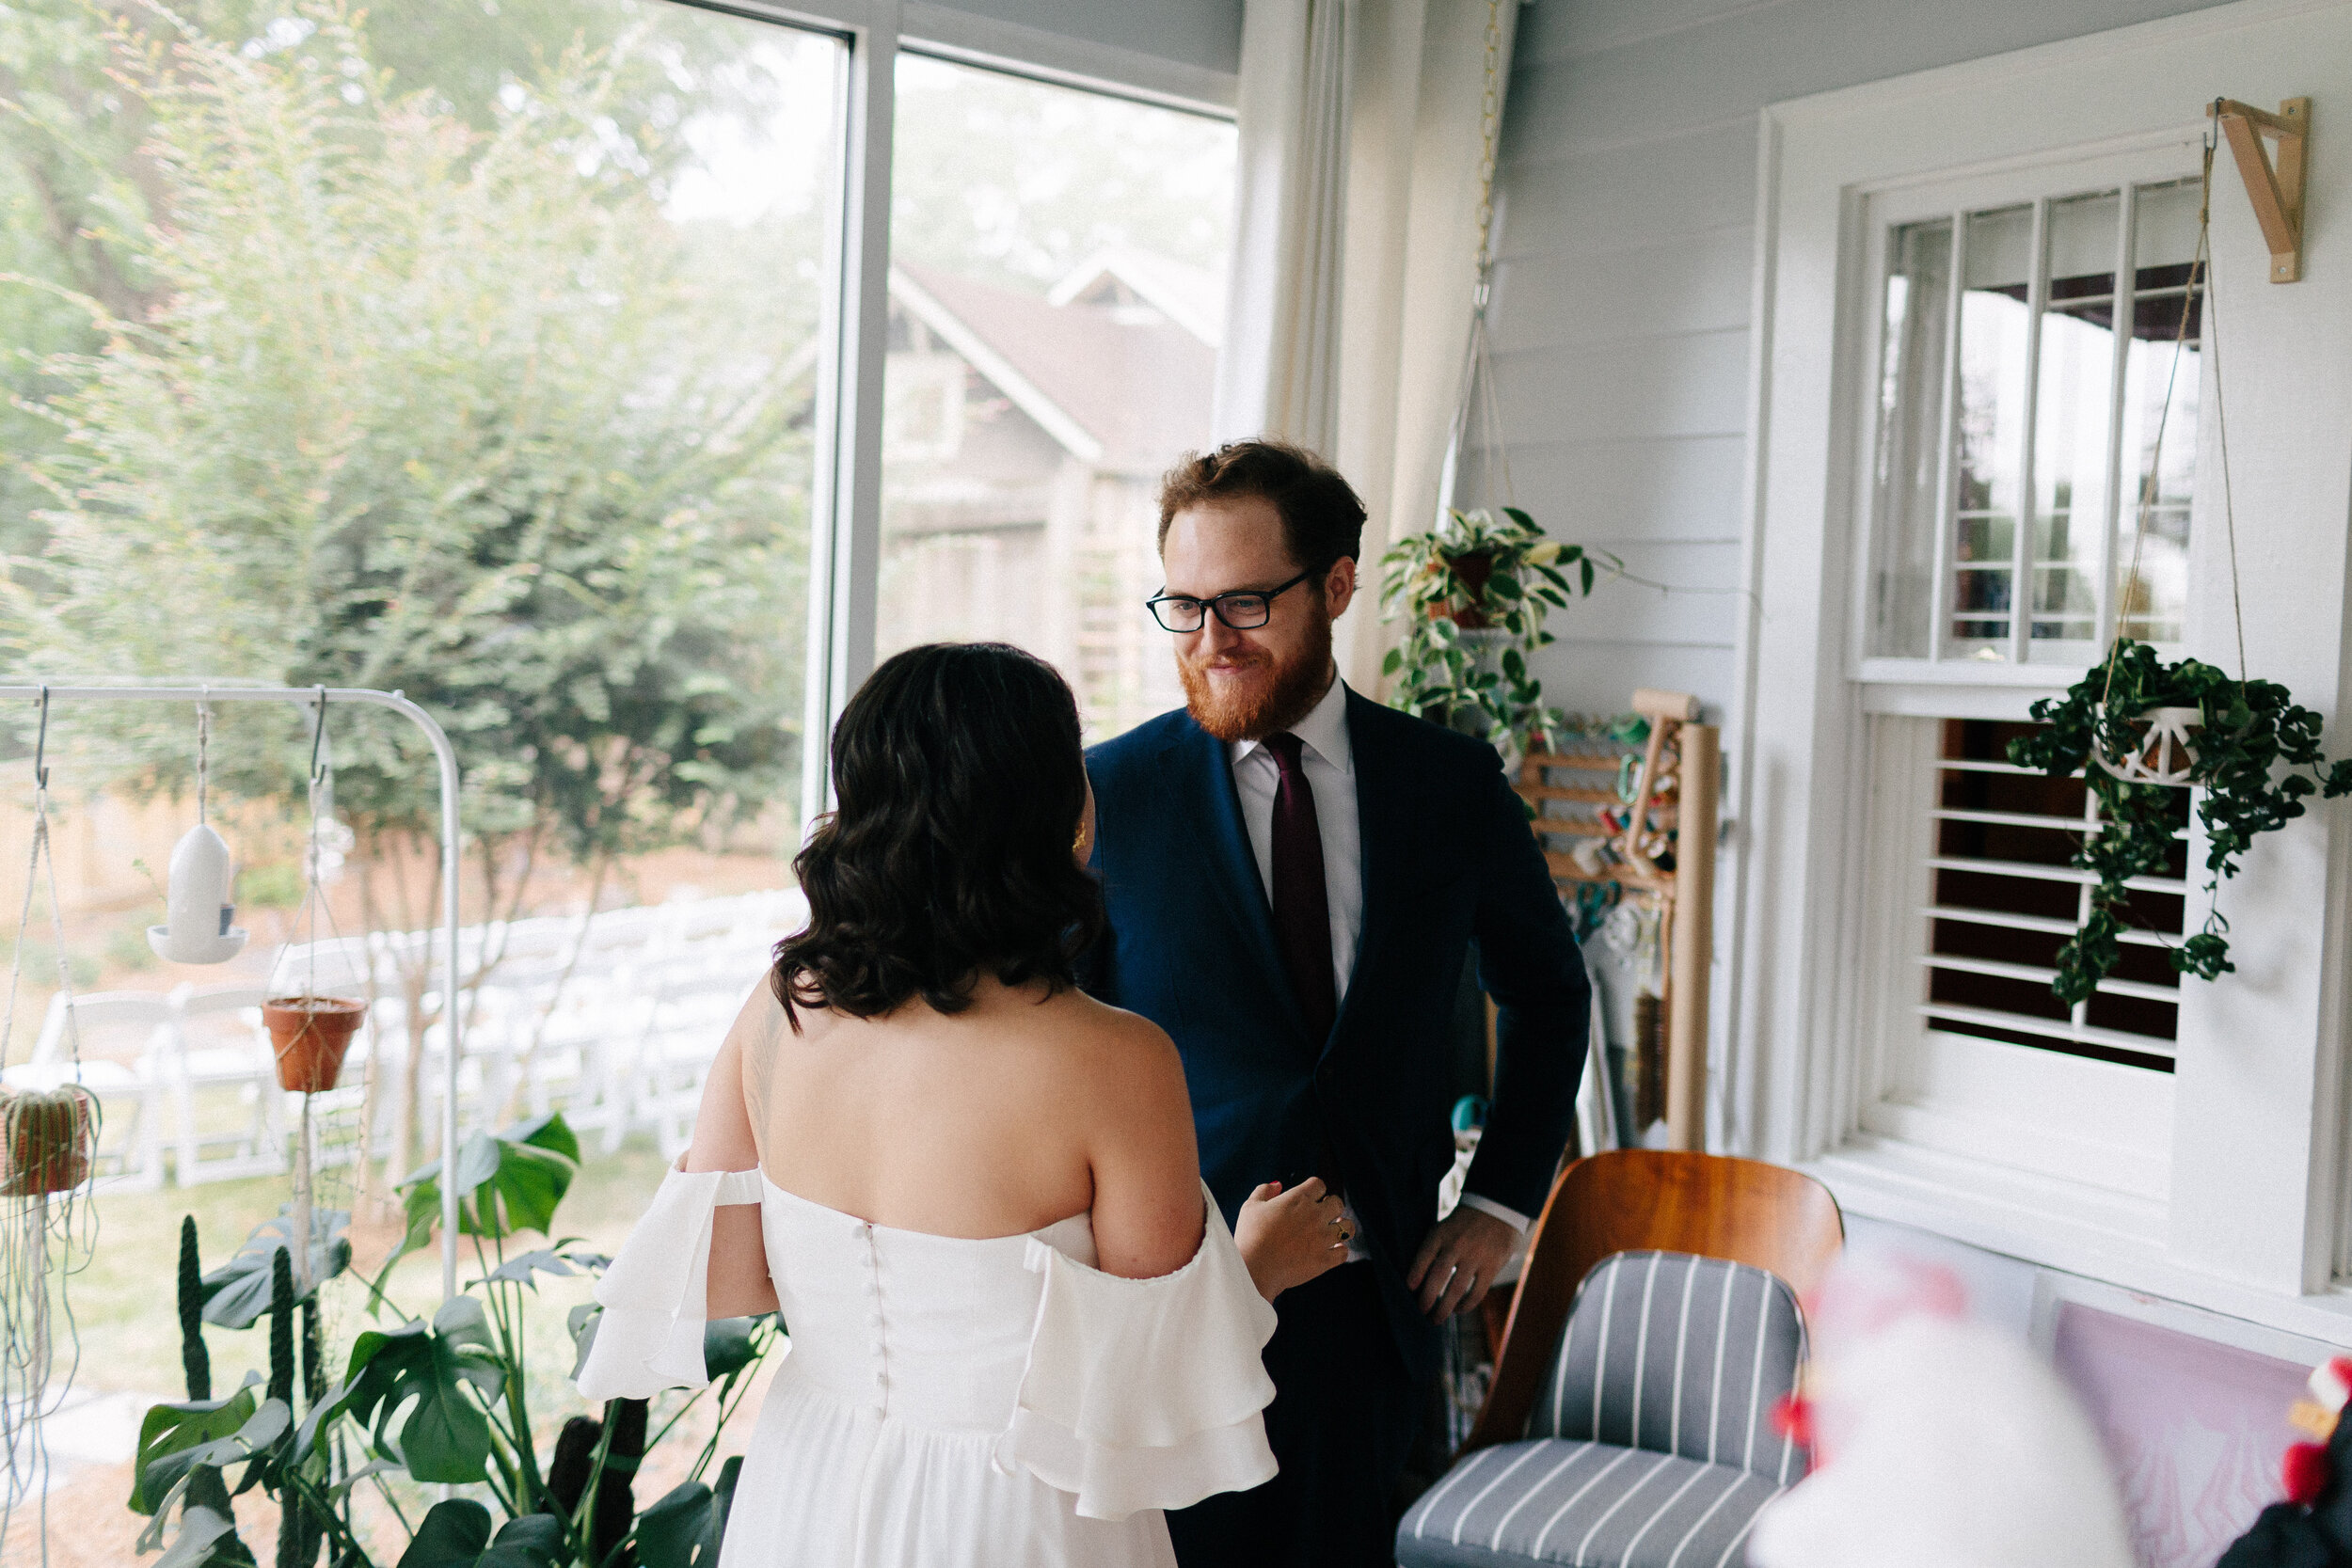 backyard_sun_in_my_belly_wedding_diy_at_home_atlanta_inman_park_arty_photographer_1143.jpg